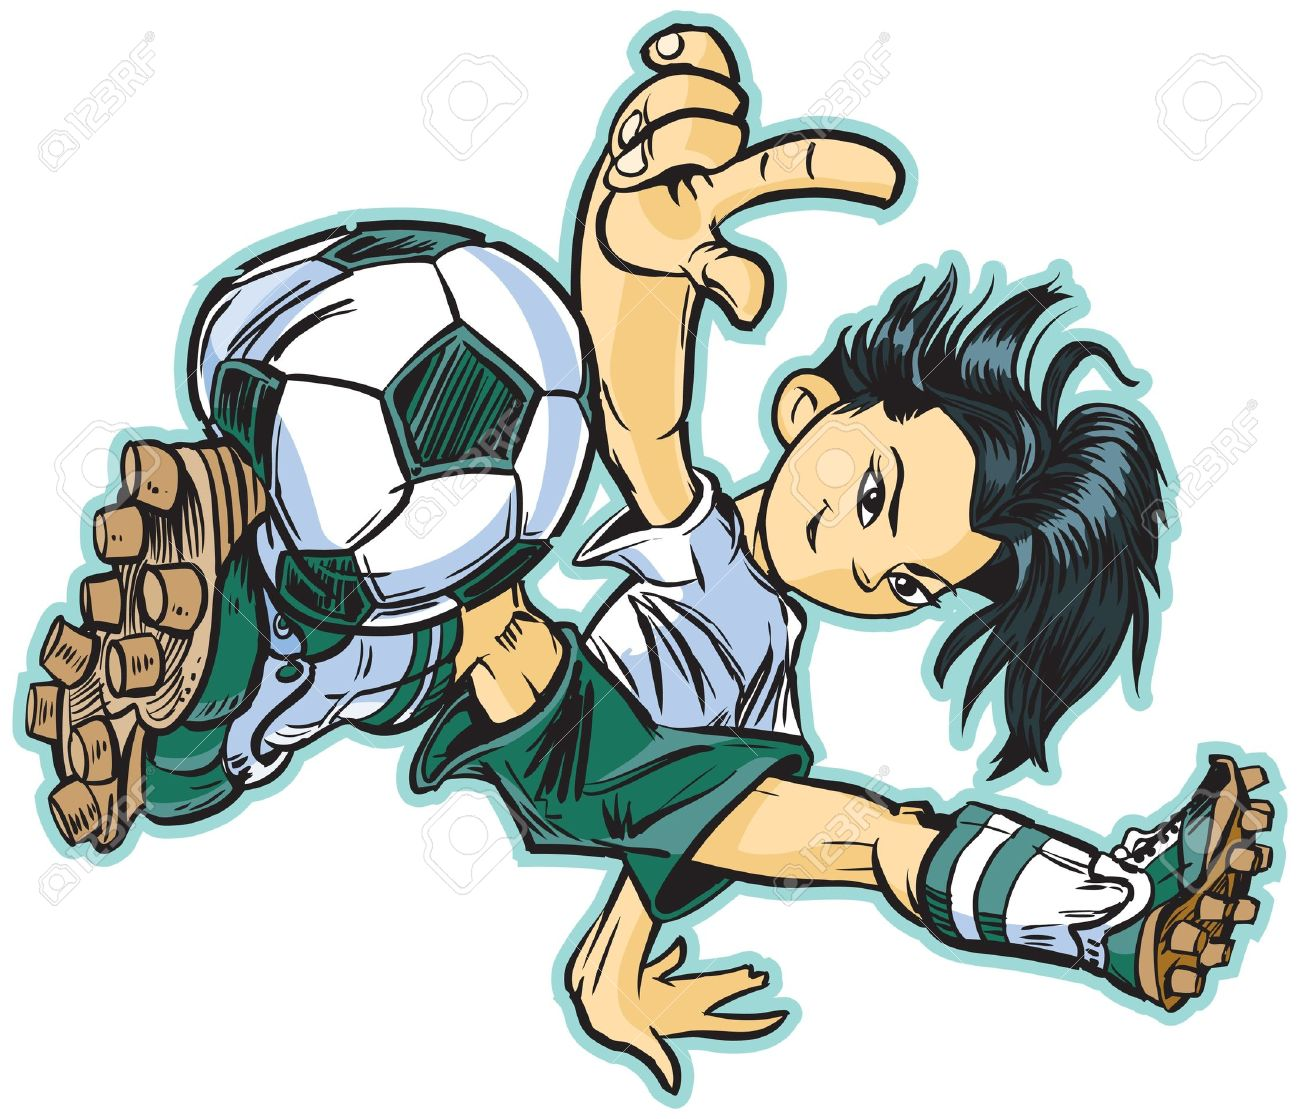 vector clip art cartoon of an asian girl using a break dancing move to play soccer. Also available in caucasian and african ethicities! Stock Vector - 20760343